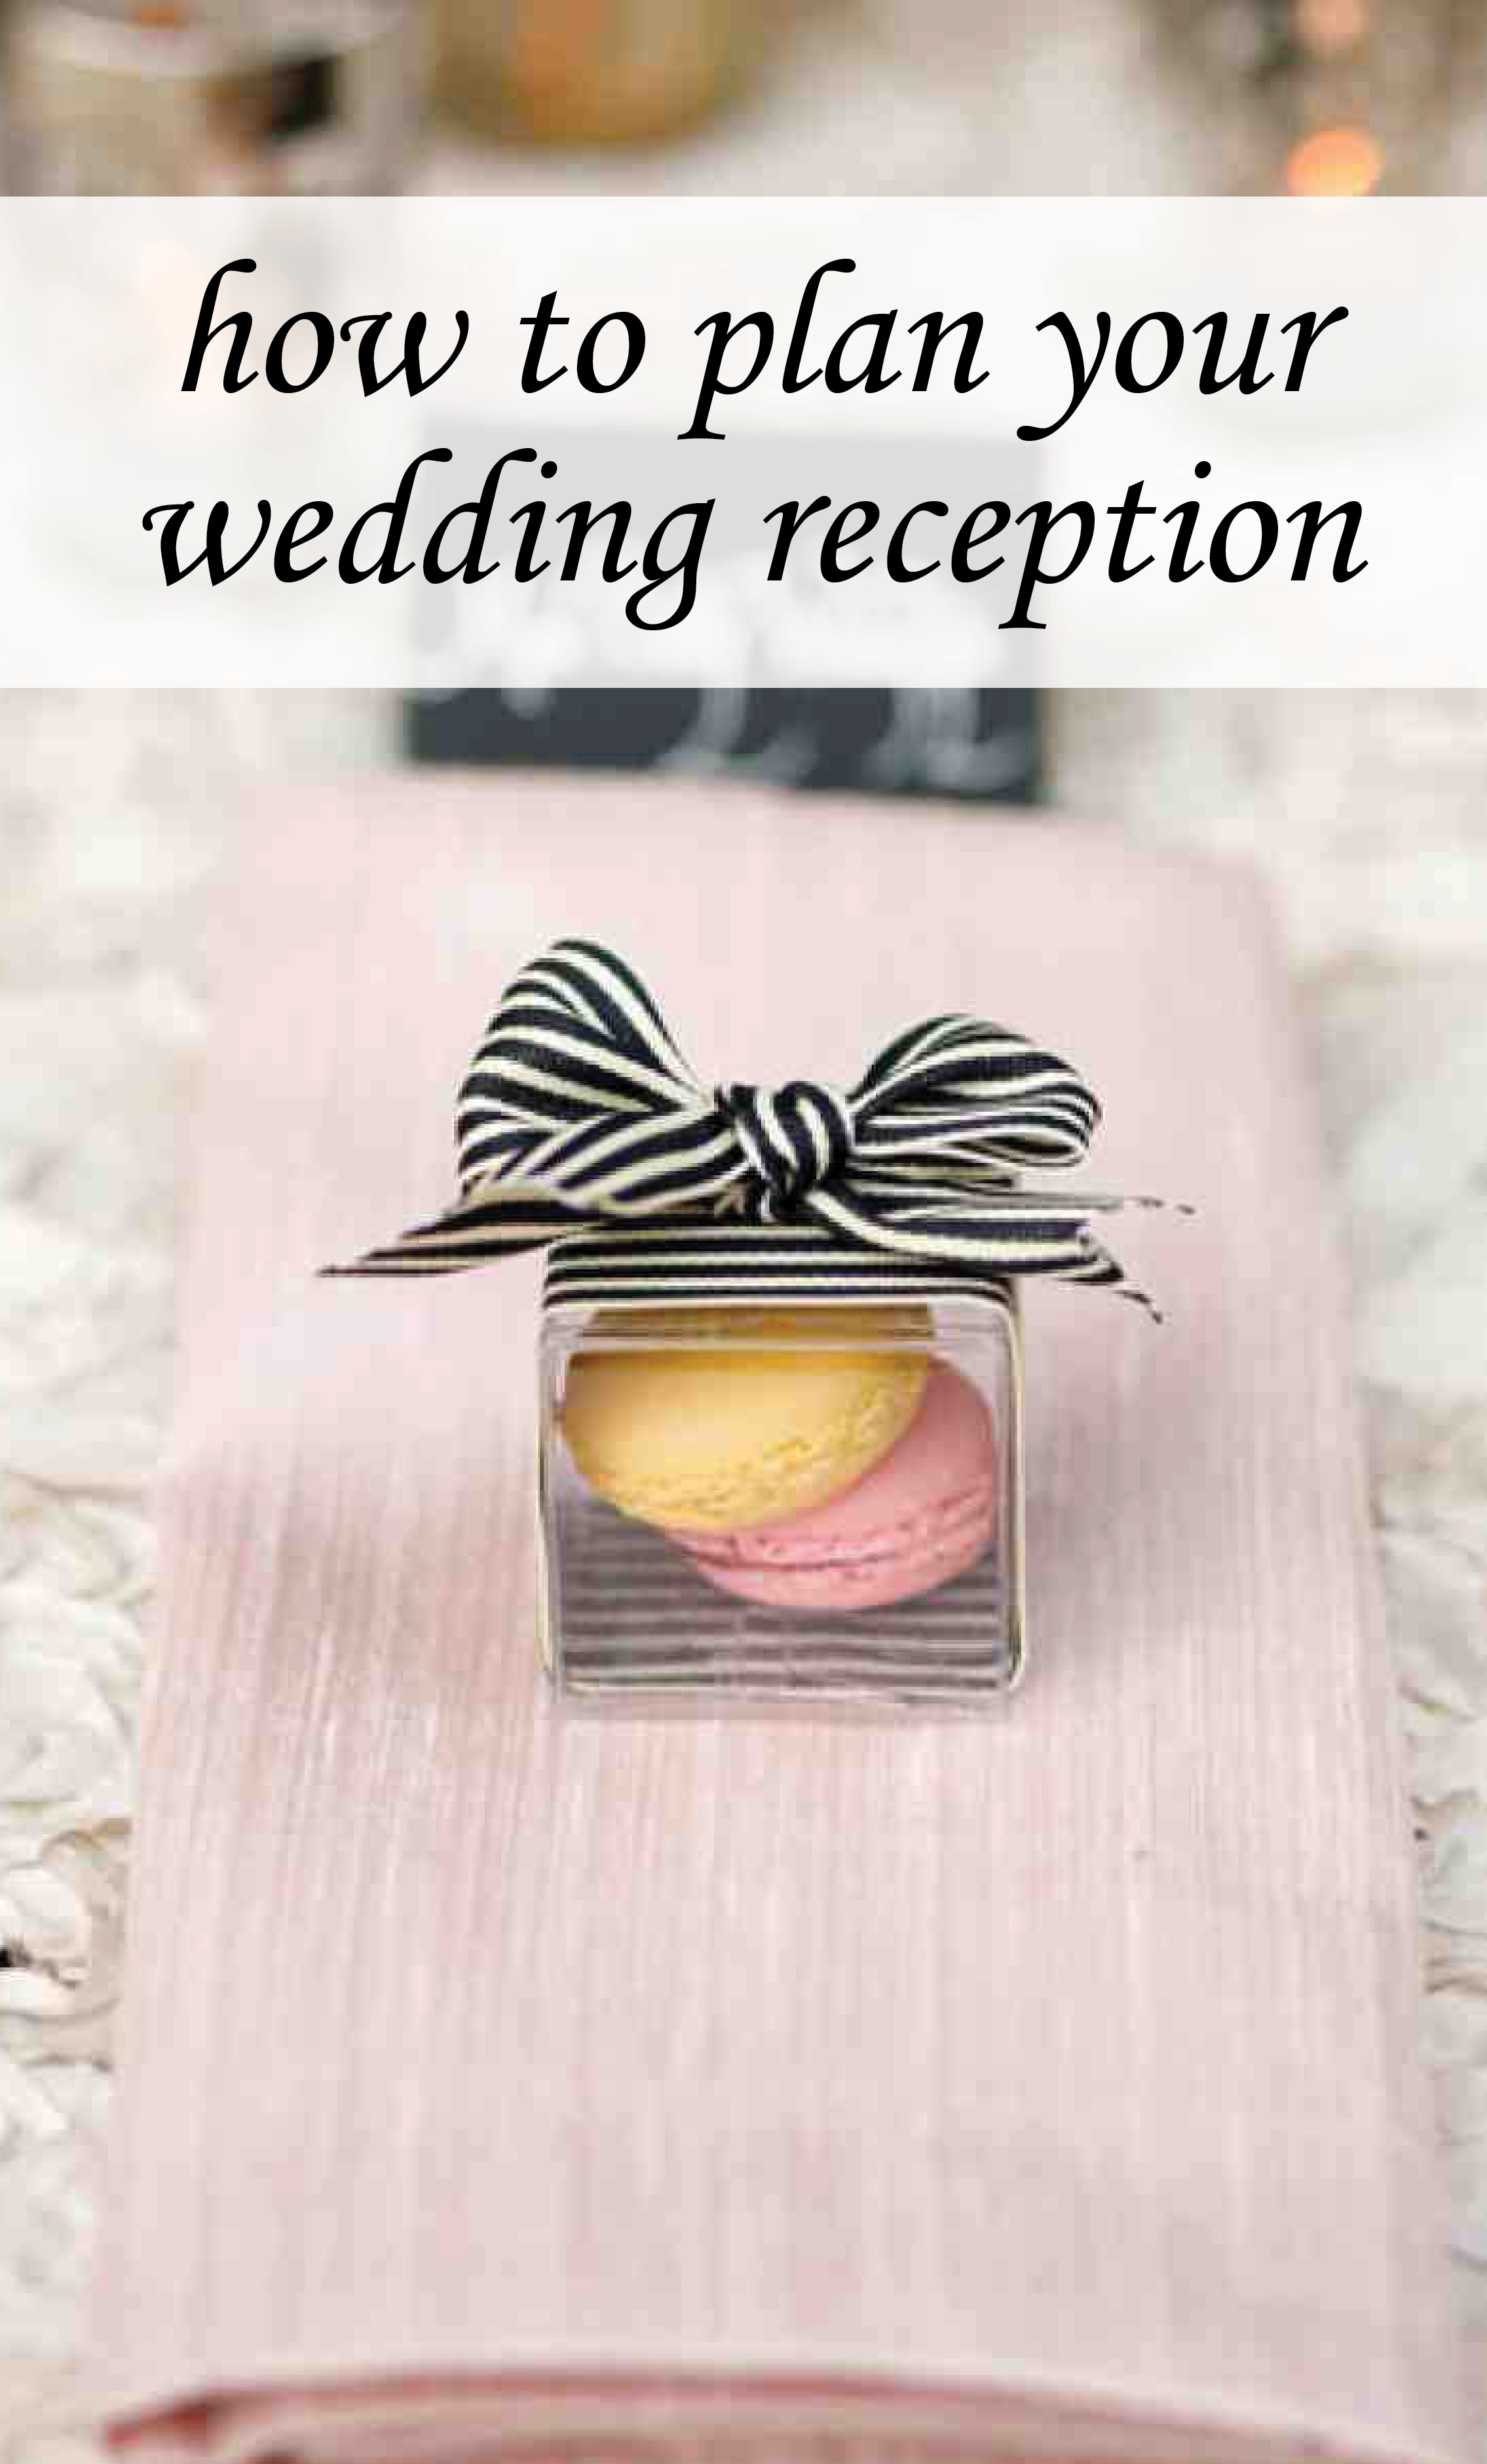 Don't Overlook Small Details | Martha Stewart Weddings - A few well-placed touches, such as monogrammed cocktail napkins or a palette-friendly favor at each table setting, can go a long way toward making your party look extra-special.